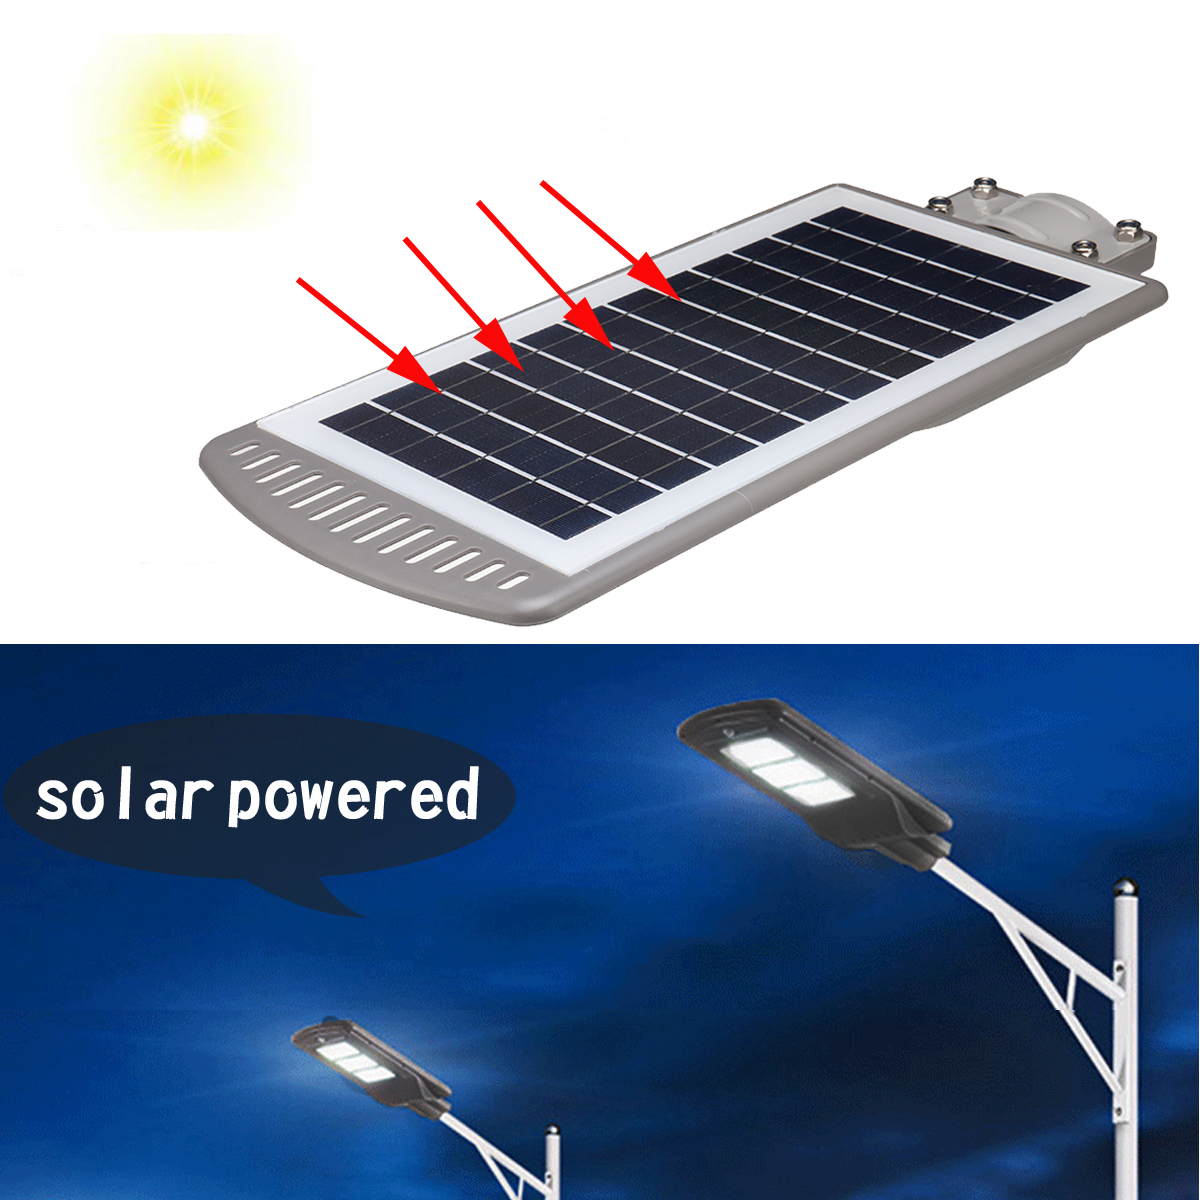 1PC 40W Solar Powered Panel LED Solar Street Light All-in-1 Time Switch Waterproof IP67 Wall Lighting Lamp for Outdoor Garden new 60w solar powered panel led solar street light all in 1 time switch waterproof ip67 wall lighting lamp for outdoor garden